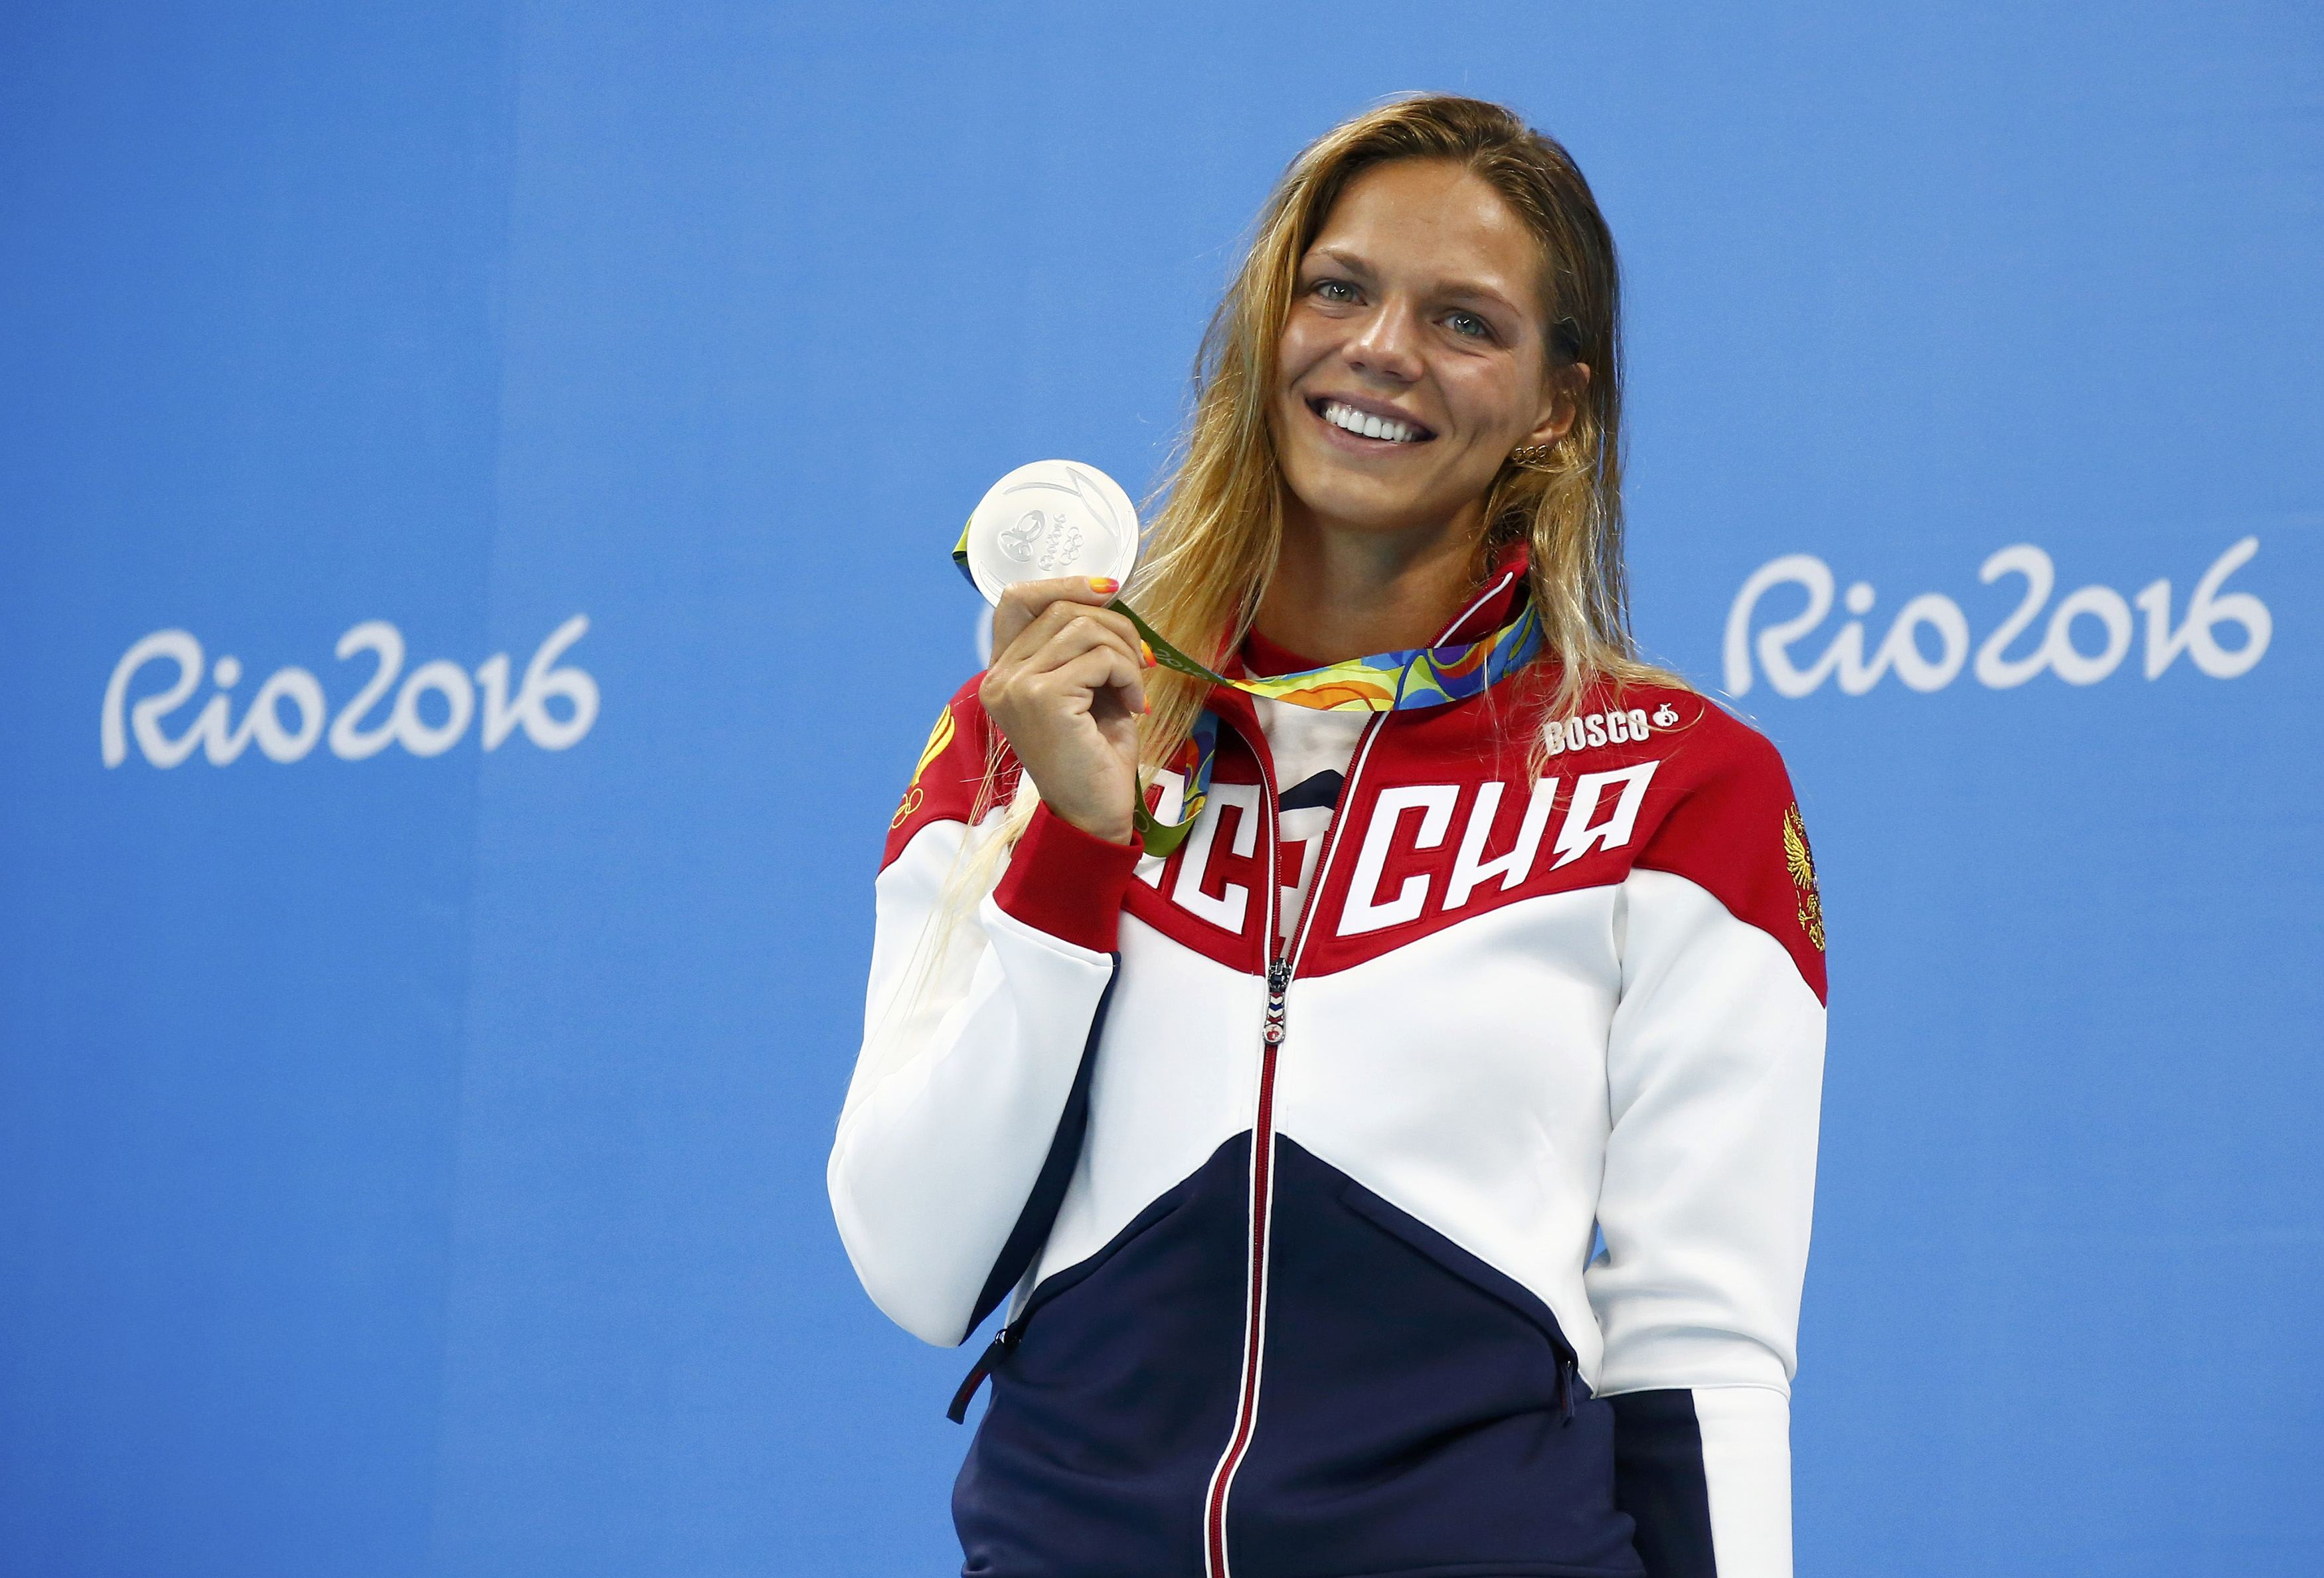 Yulia Efimova (RUS) of Russia poses with her silver medal at the Rio Olympics.